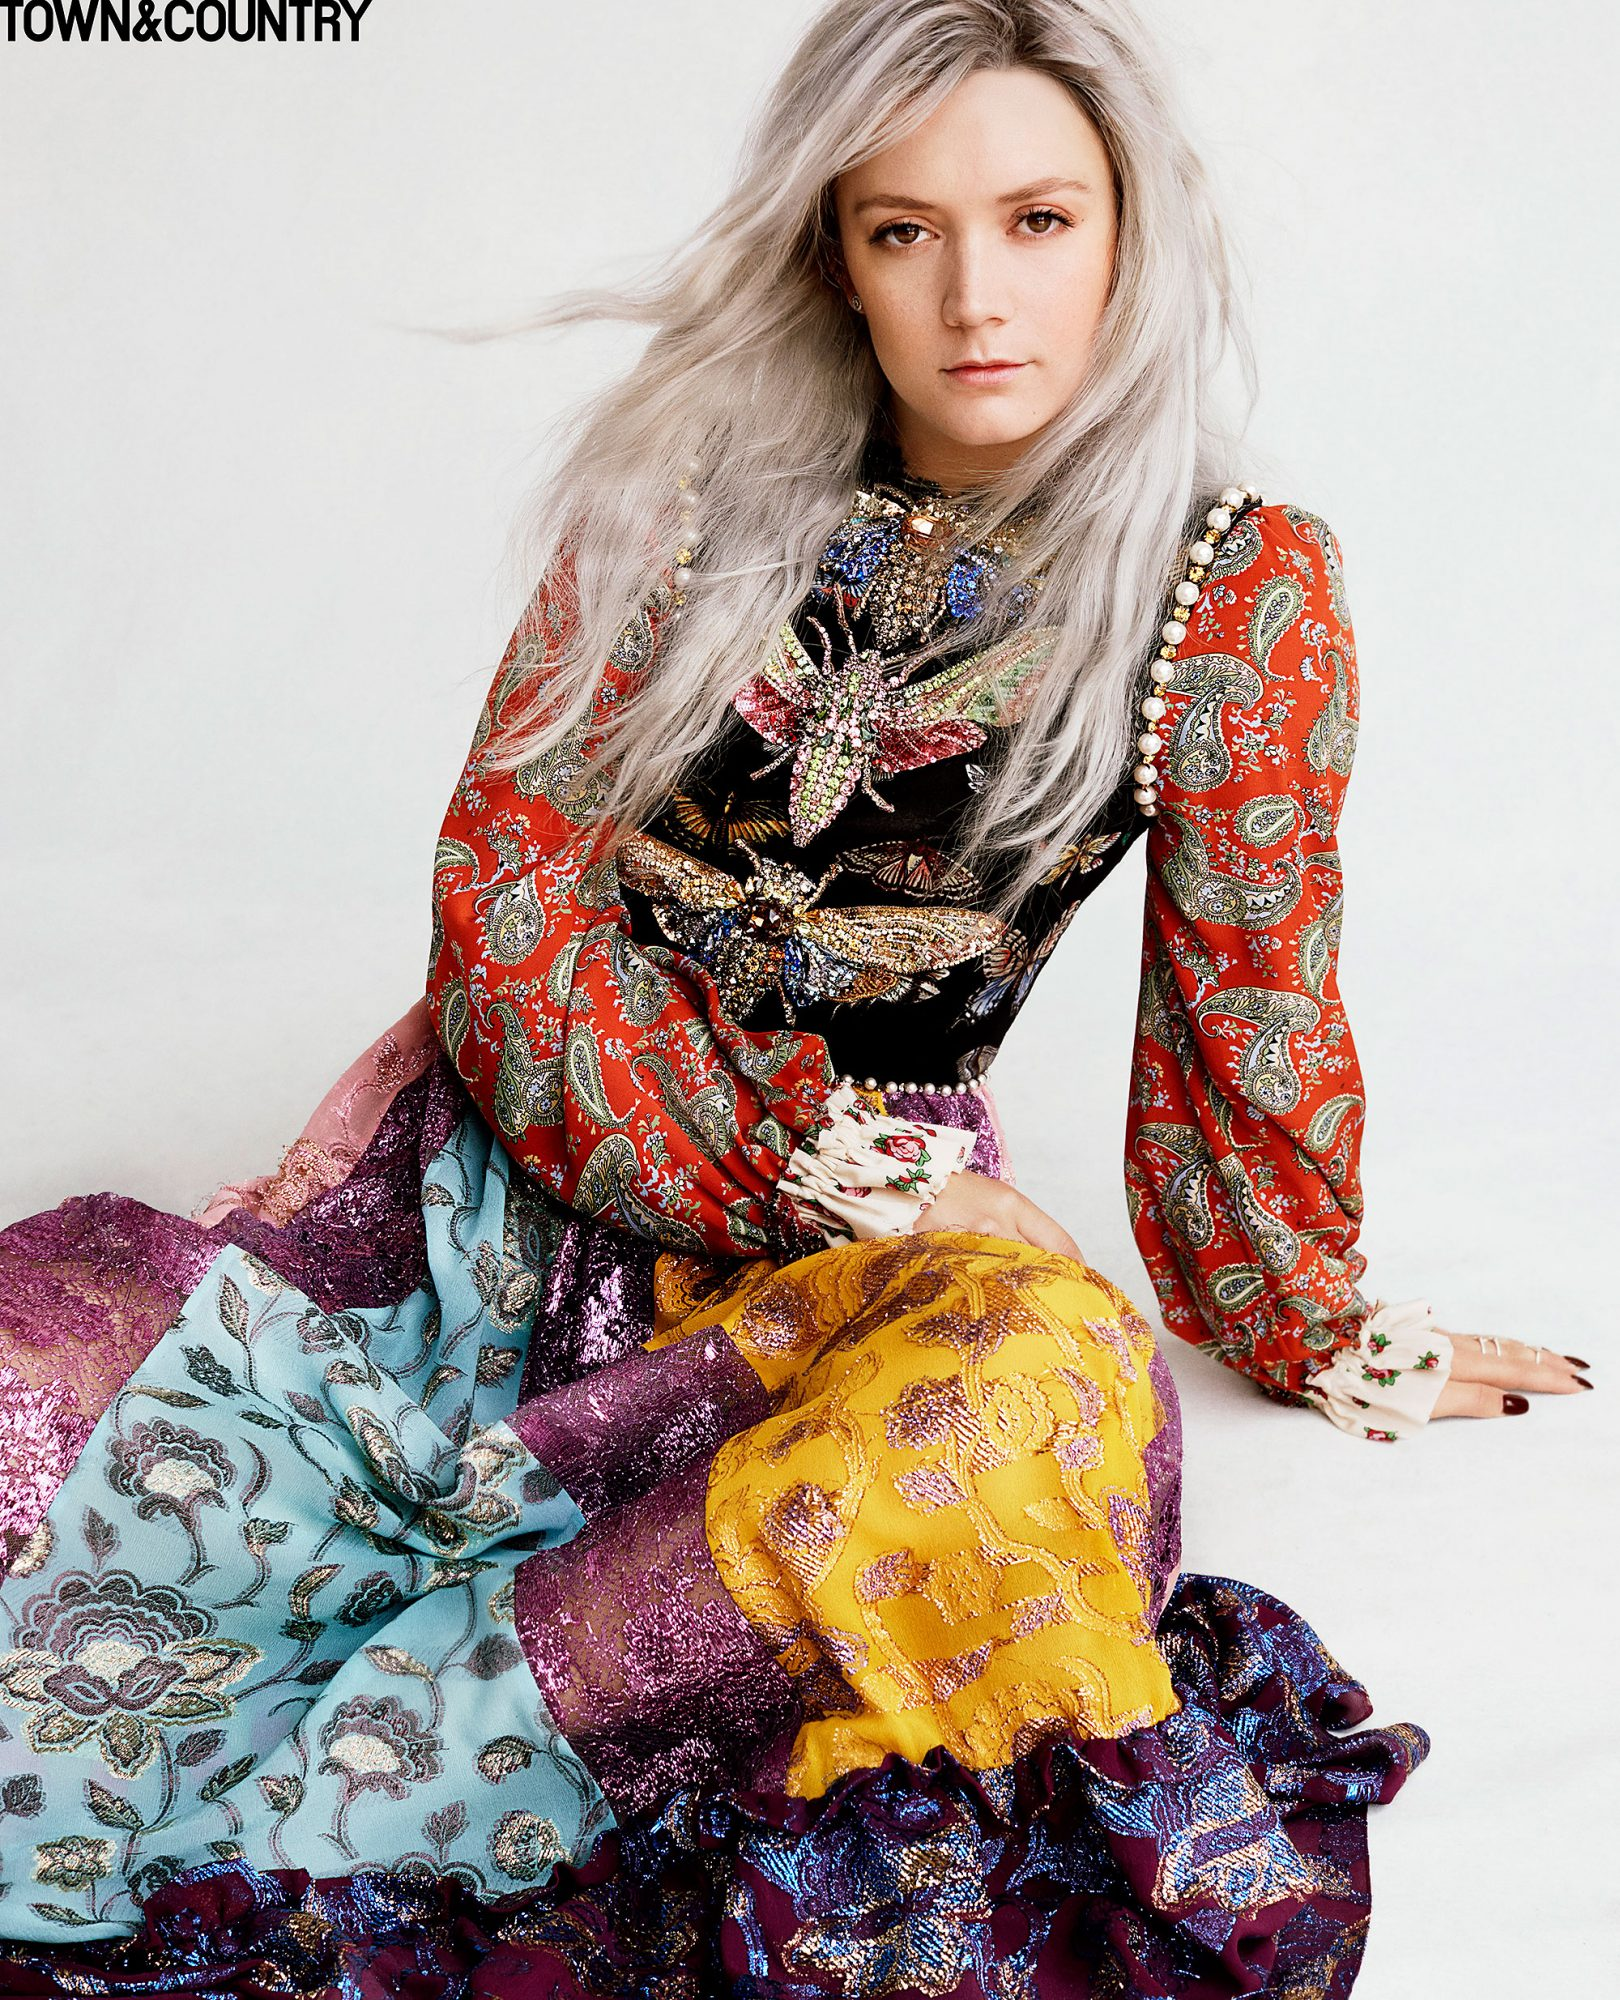 billie-lourd-town-and-country-4